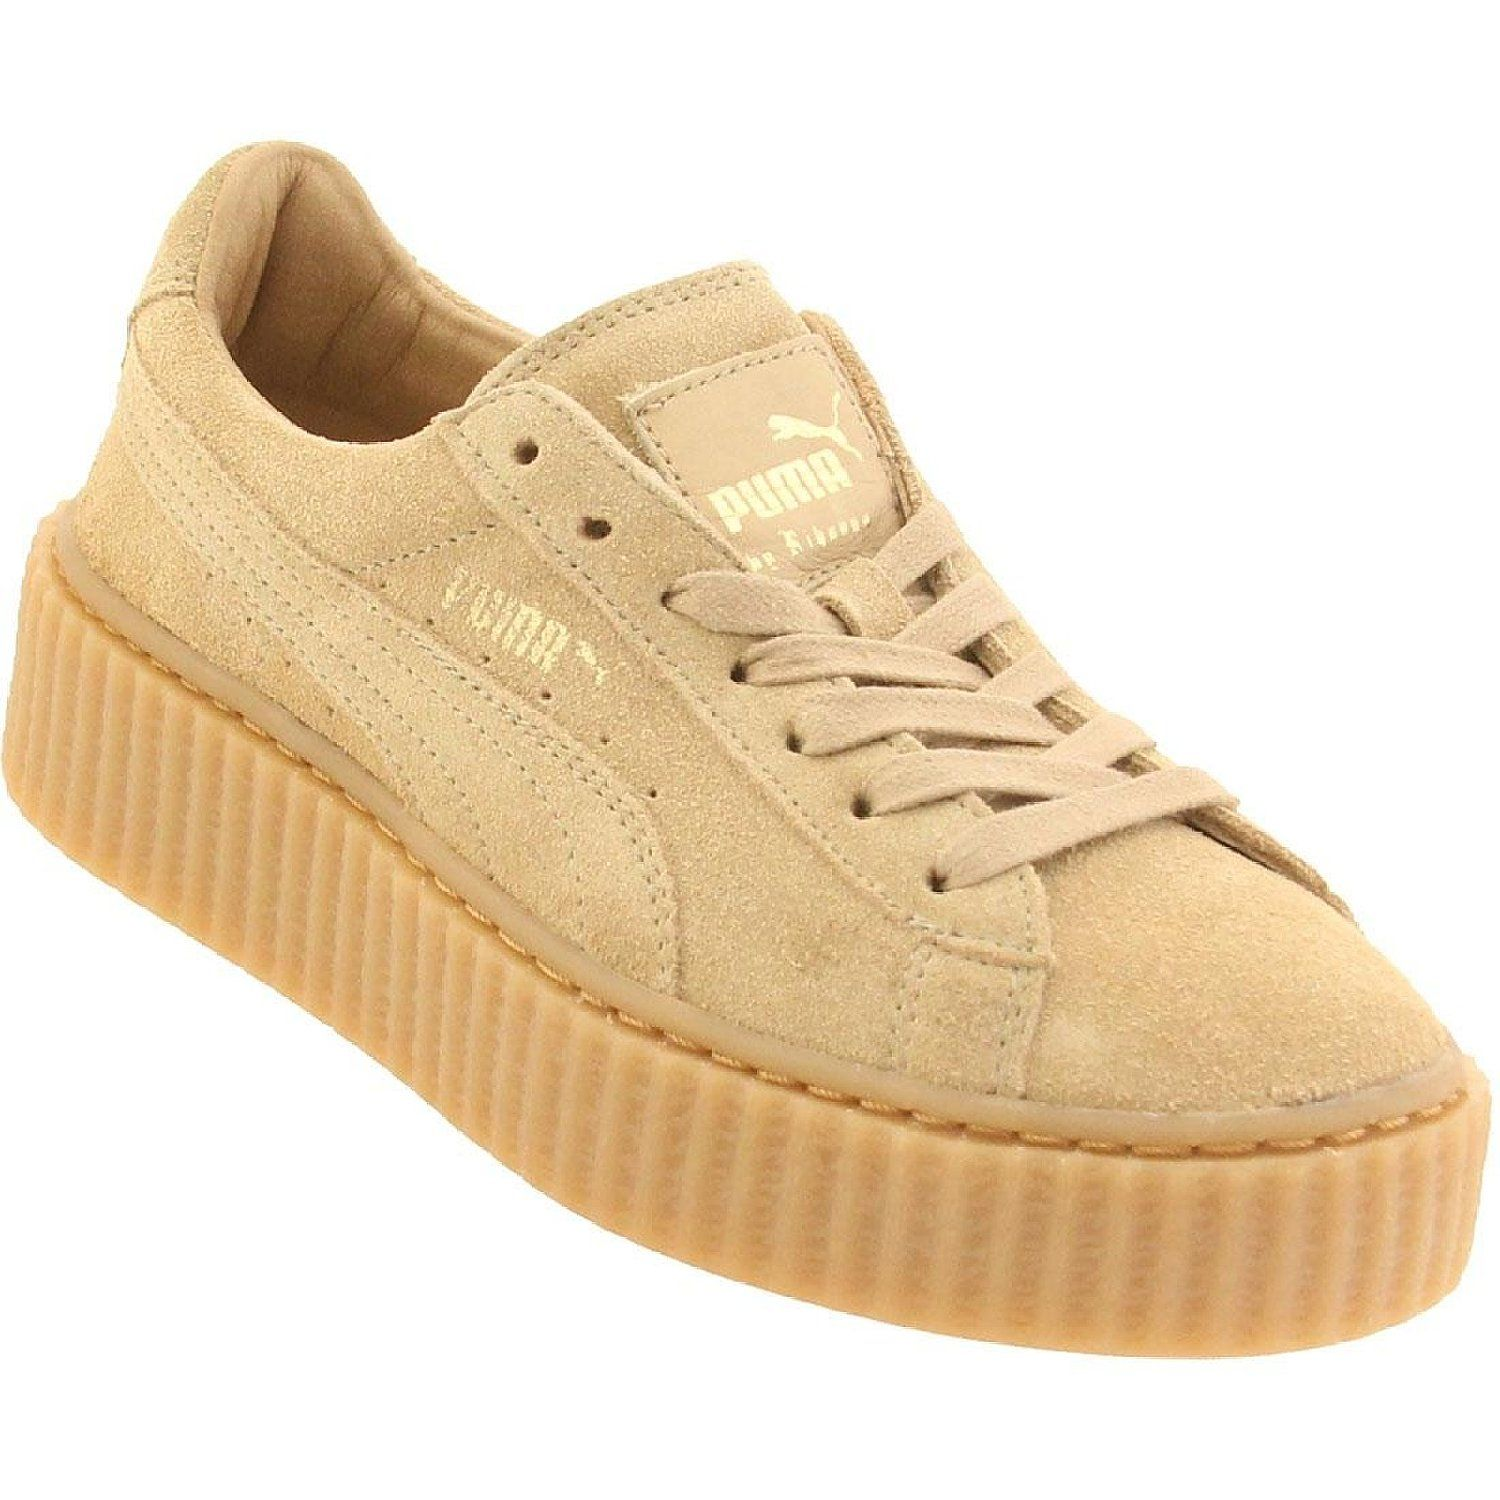 0c9525349326 puma shoes rihanna 2015 women cheap   OFF35% Discounted